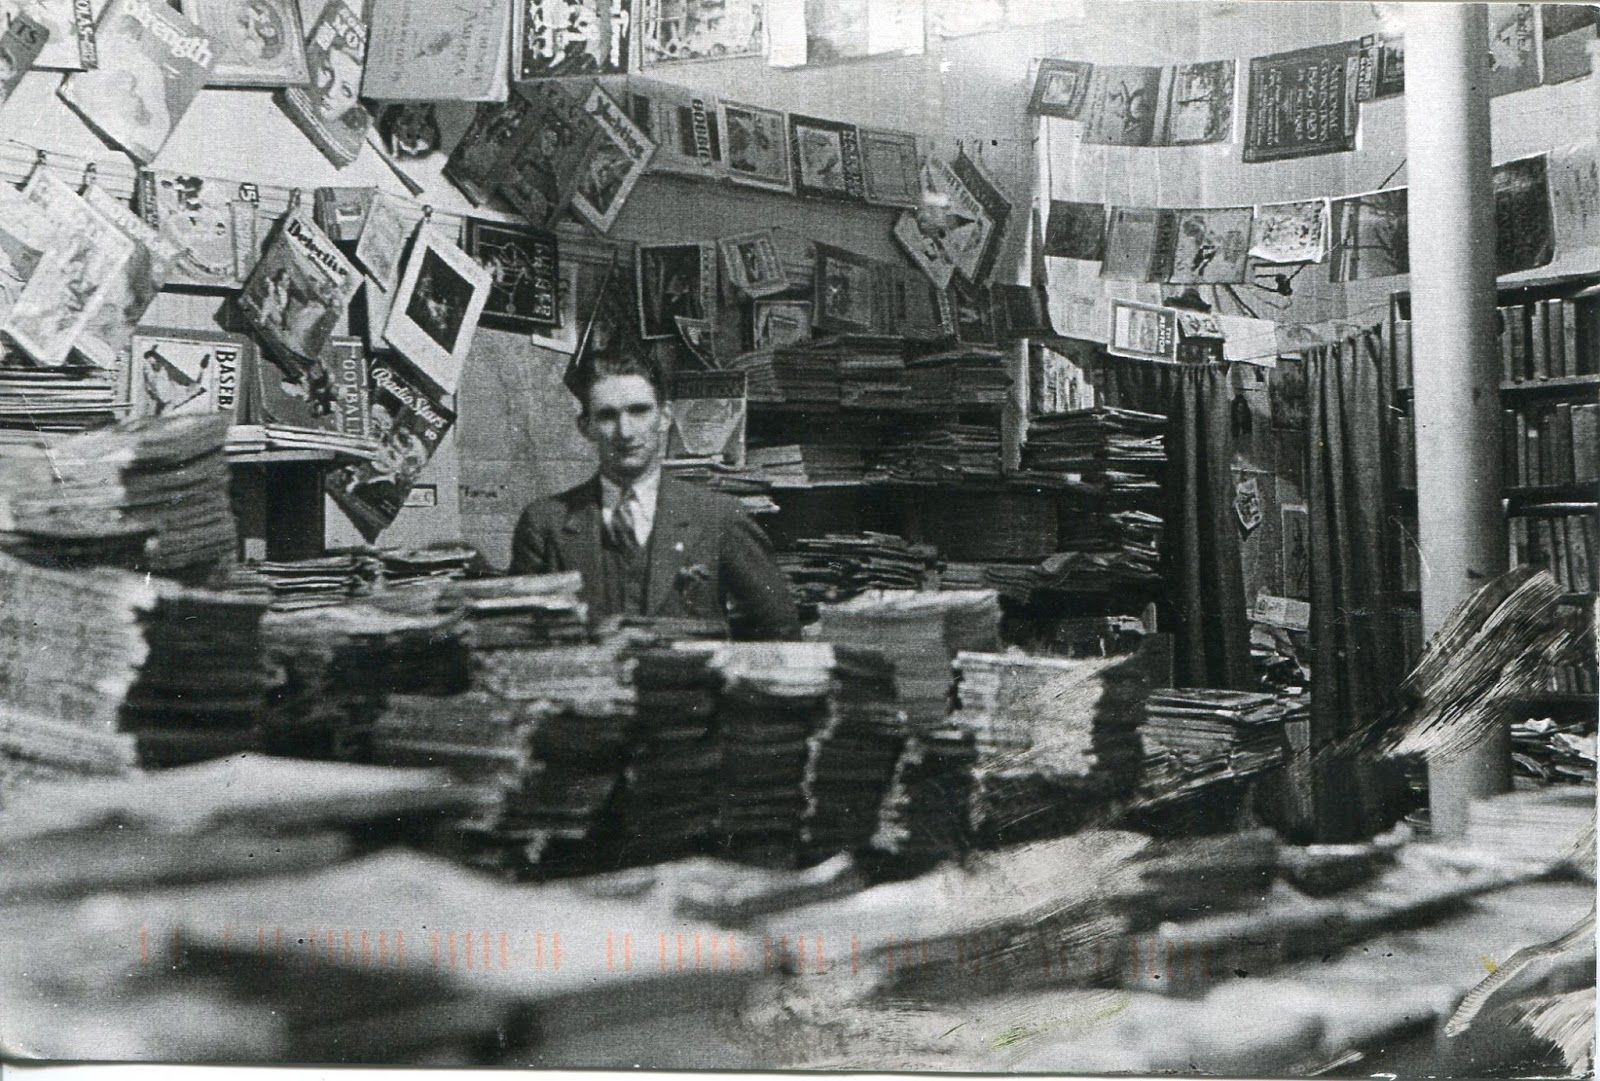 Stephen Willins, Proprietor / Oceans of Books by the Sea / Wellfleet, MA (1934)